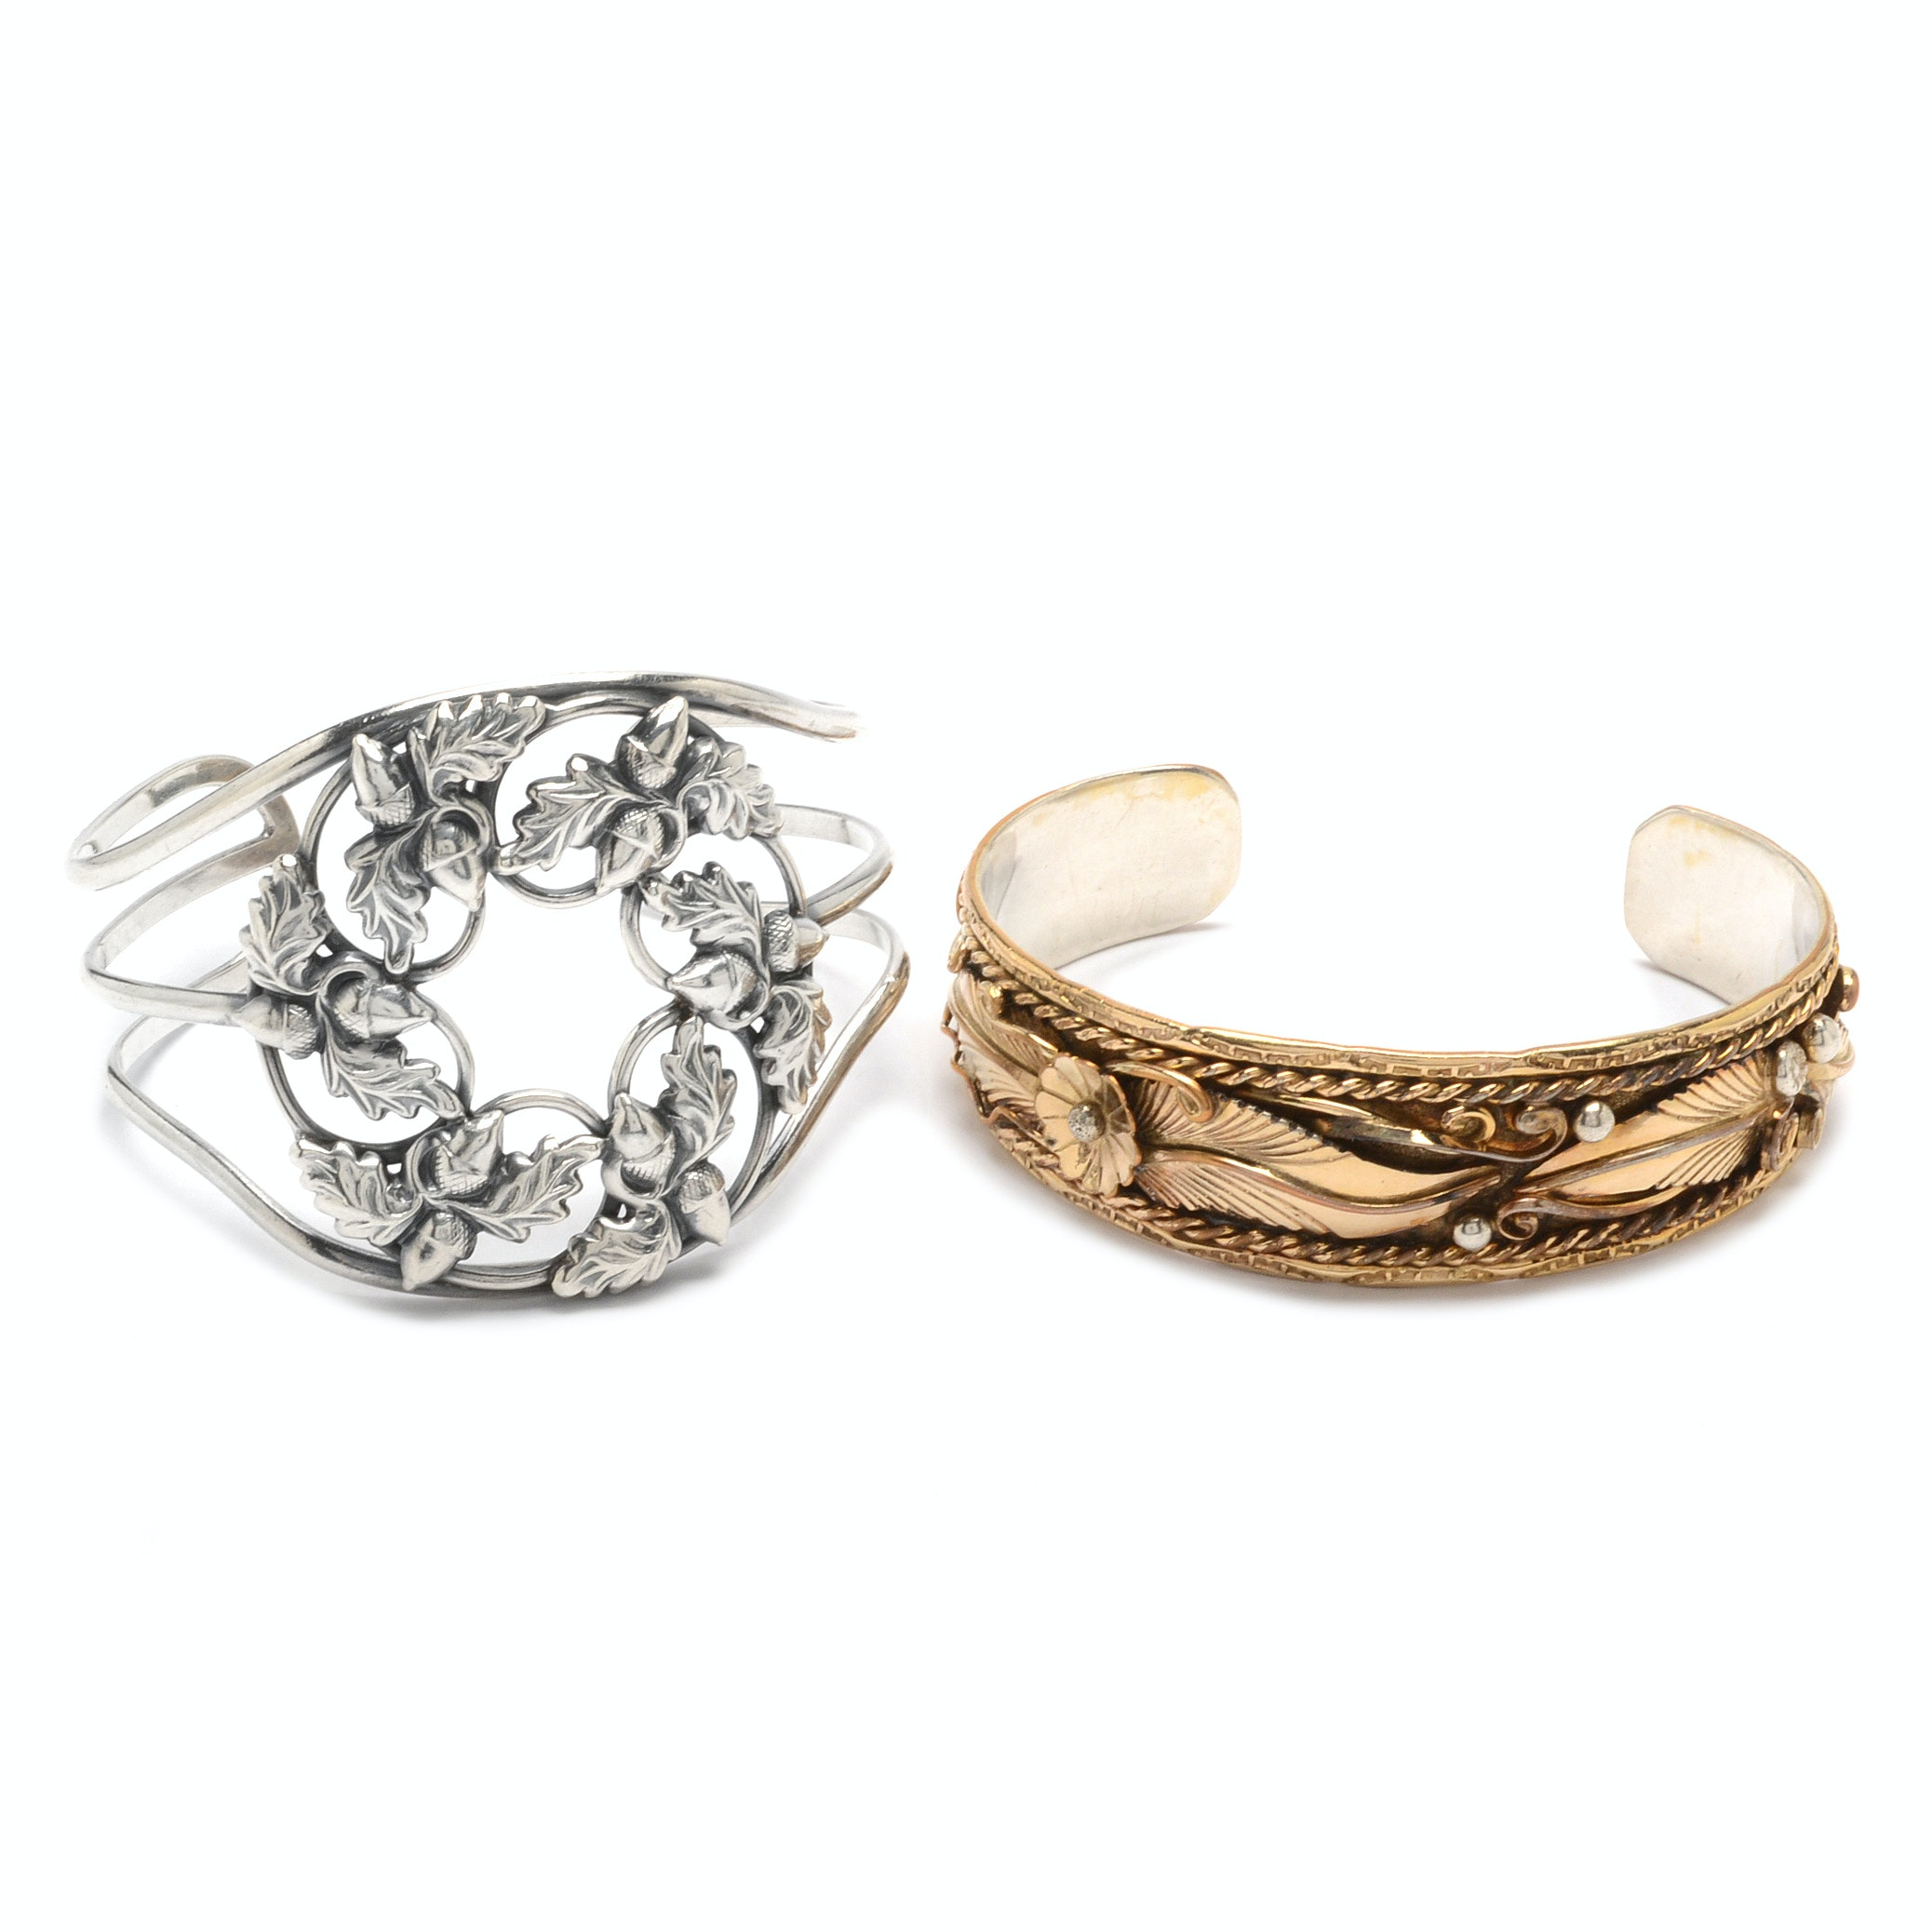 Danecraft Sterling Silver Cuff and Sterling Silver and Gold Filled Bracelet